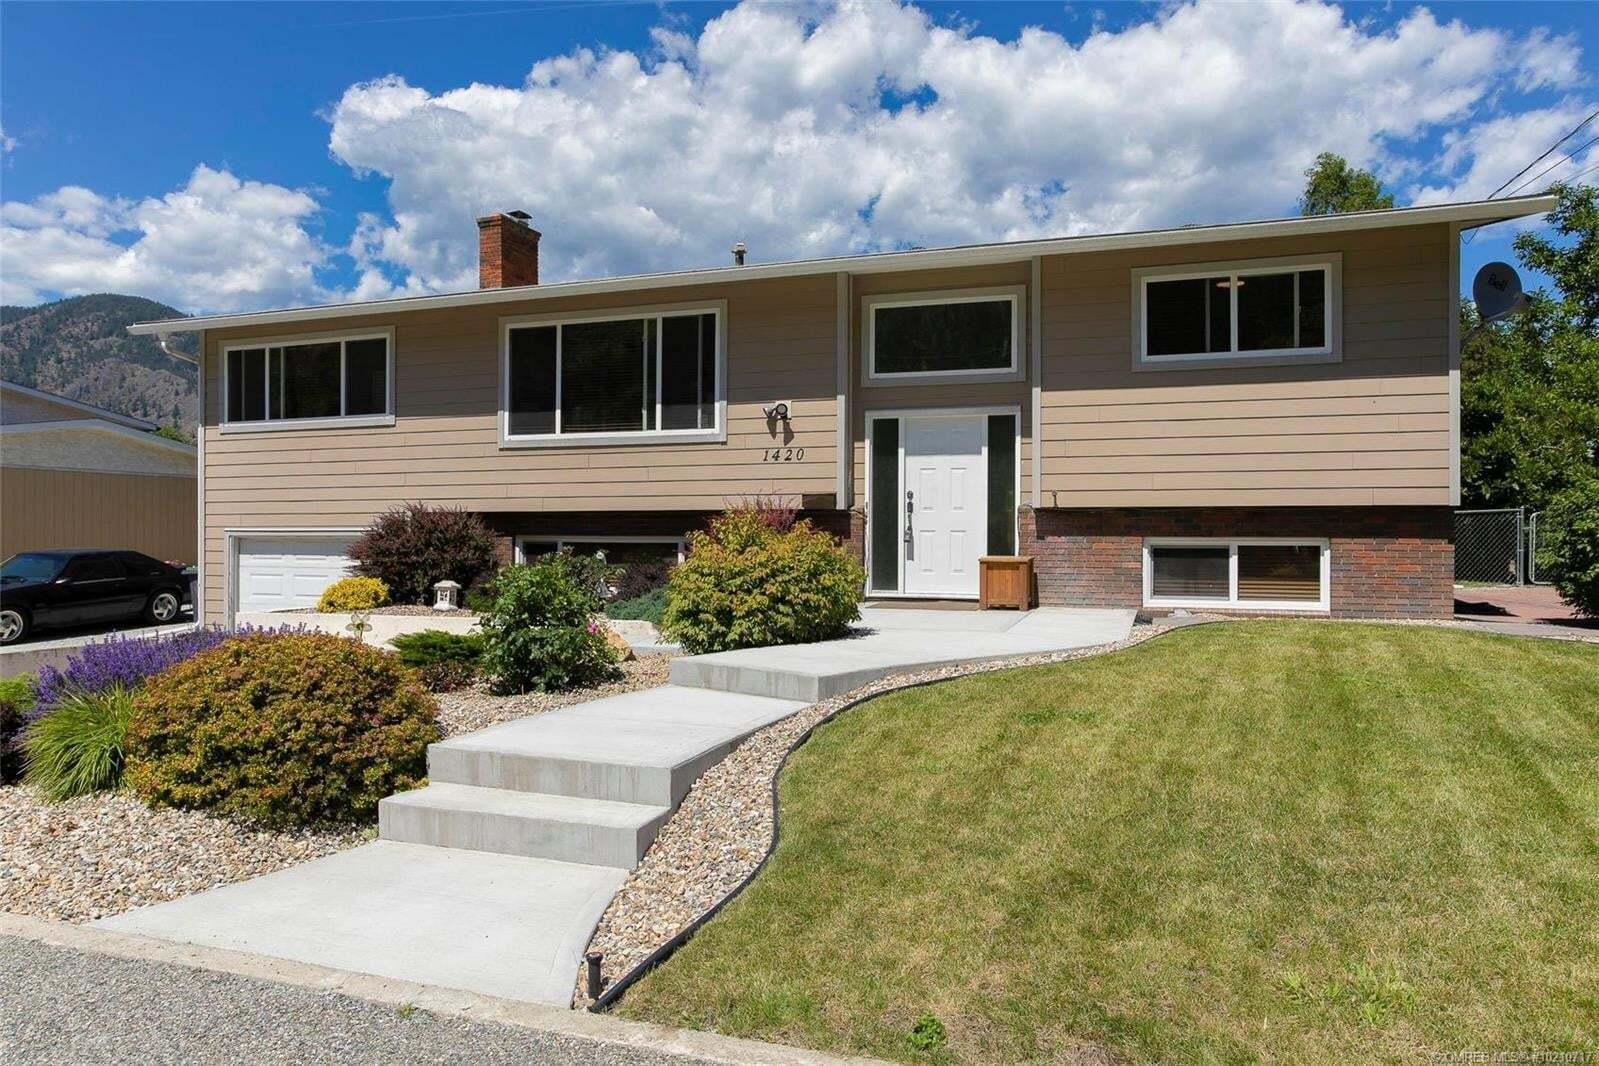 House for sale at 1420 Brentwood Rd West Kelowna British Columbia - MLS: 10210717